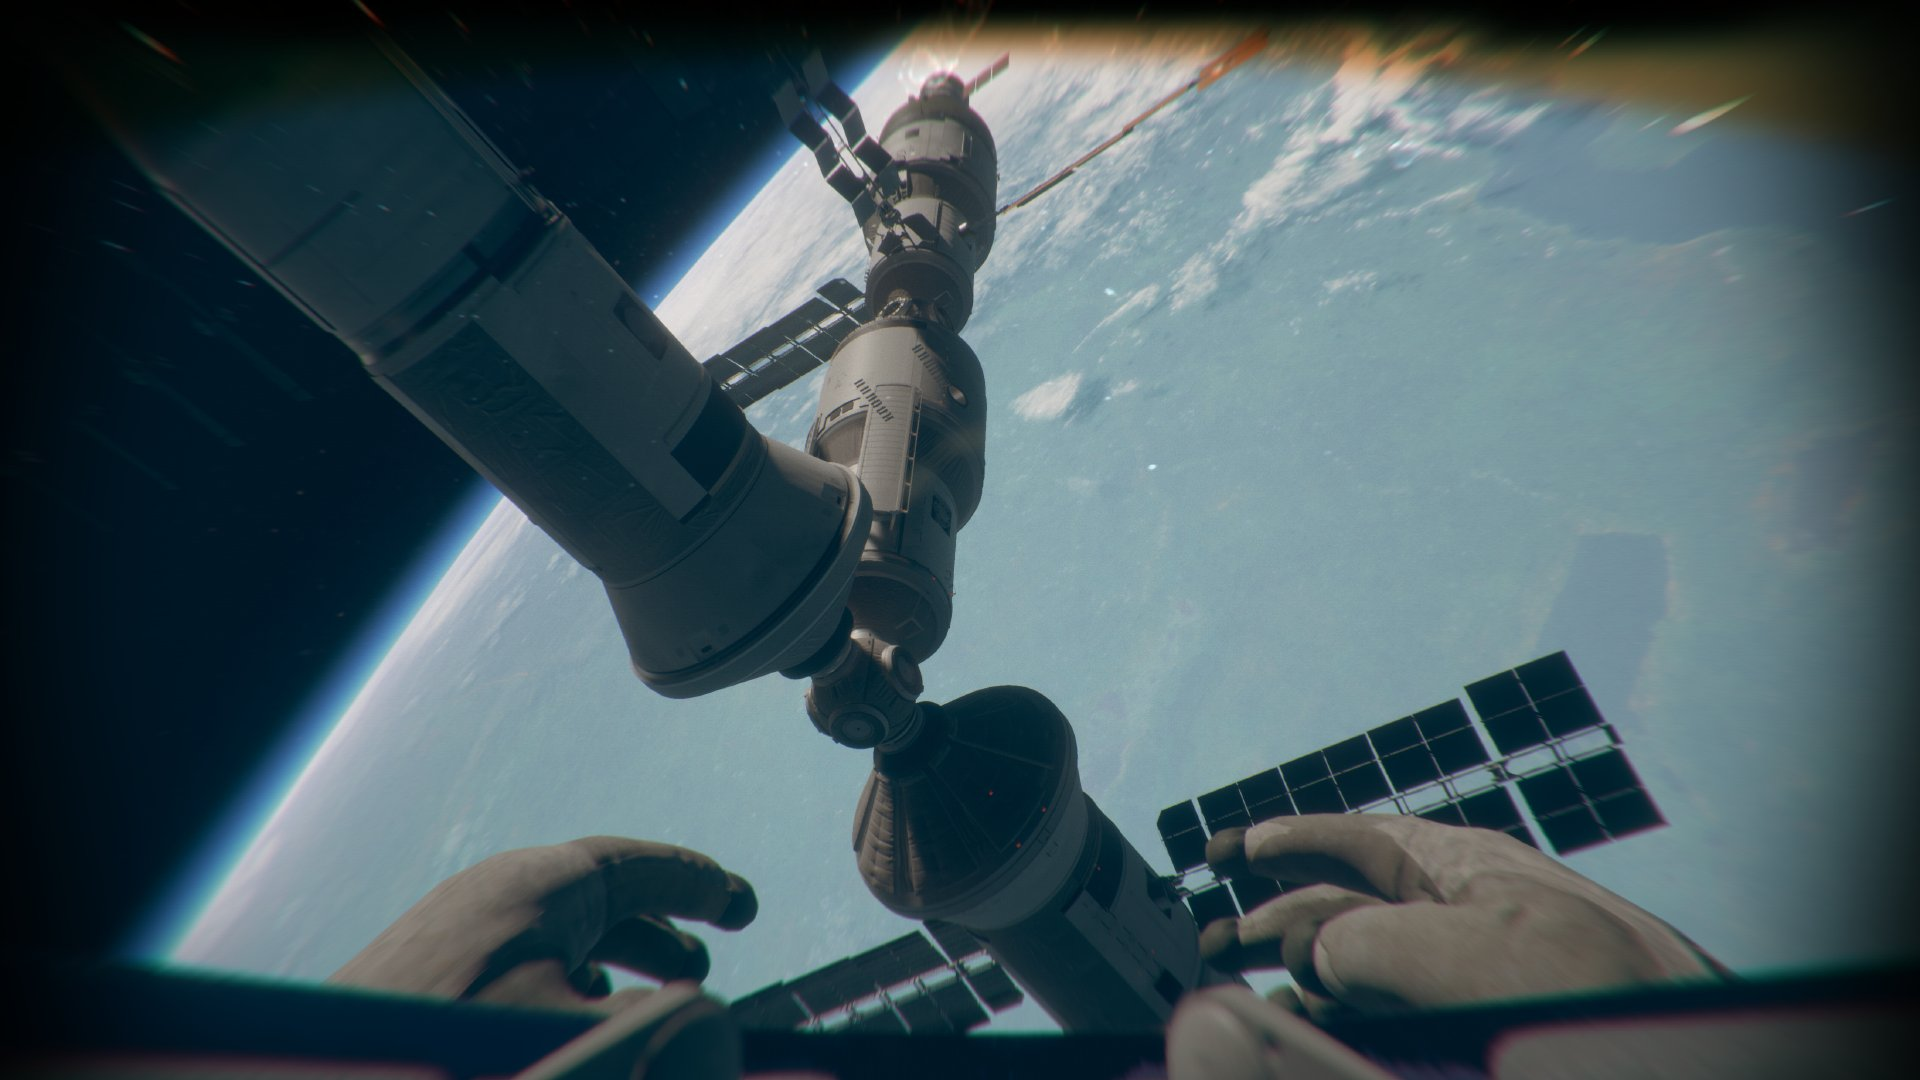 Screenshot of Outreach space exploration game